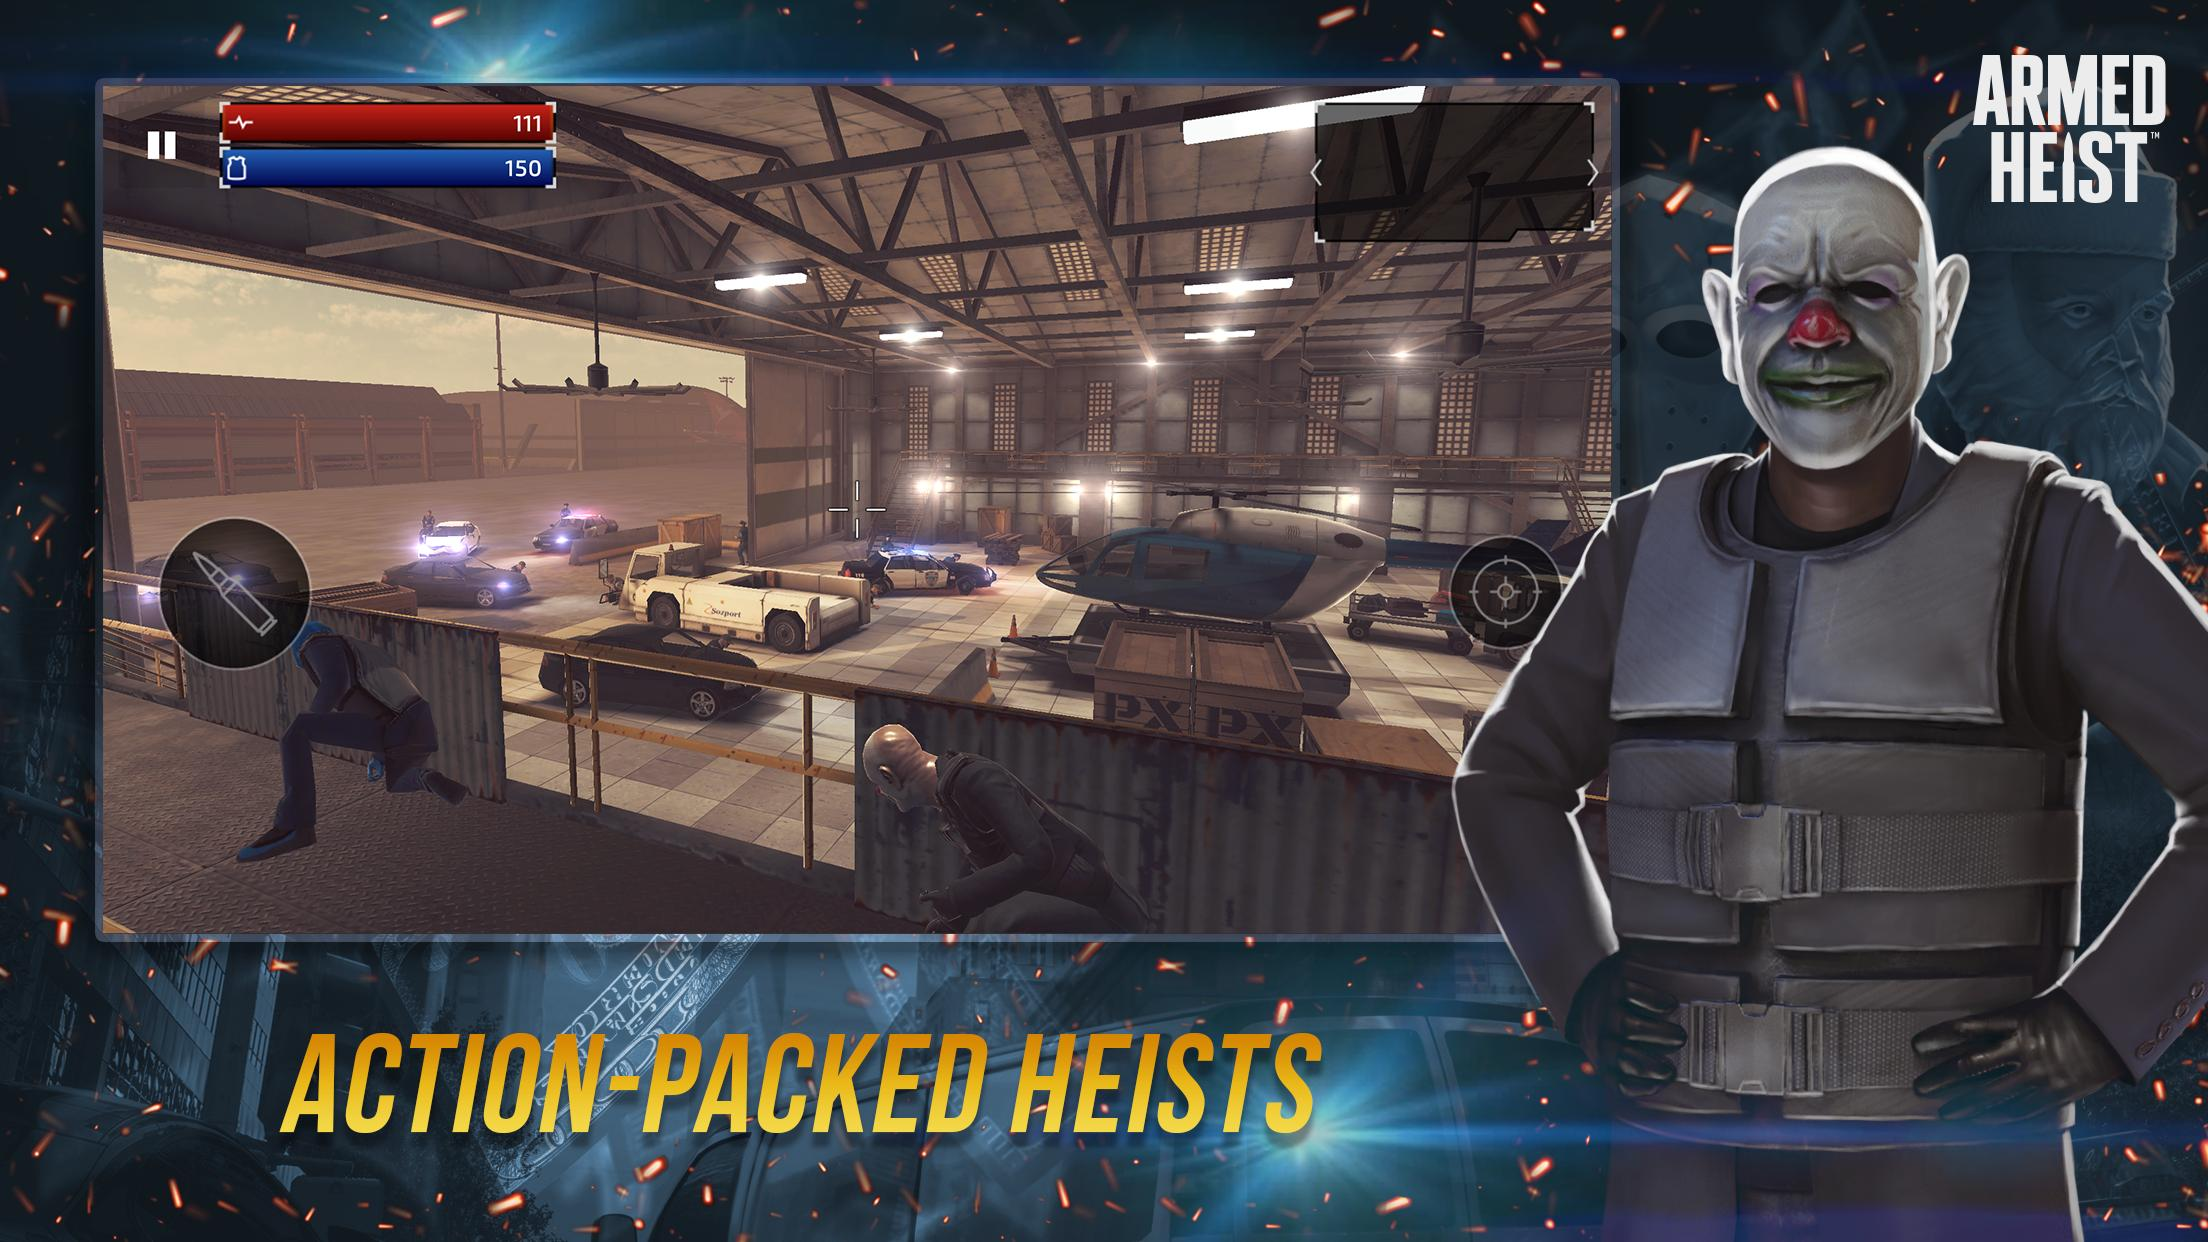 Armed Heist TPS 3D Sniper shooting gun games 2.1.1 Screenshot 1